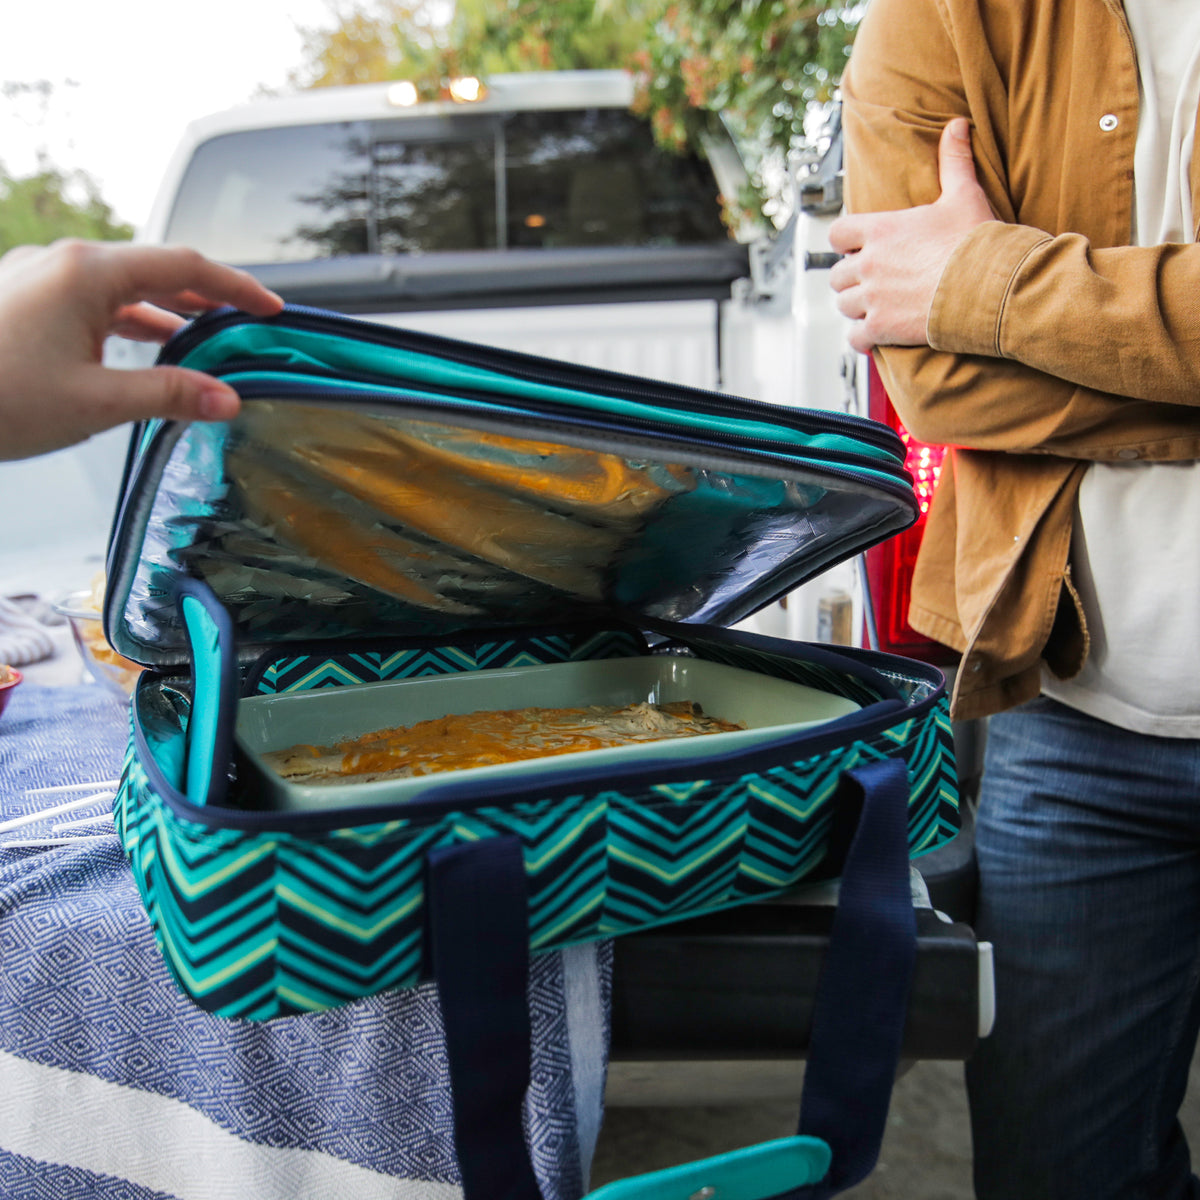 Arctic Zone® Food Pro Expandable Thermal Carrier - Teal - Lifestyle, taking a peak at the food